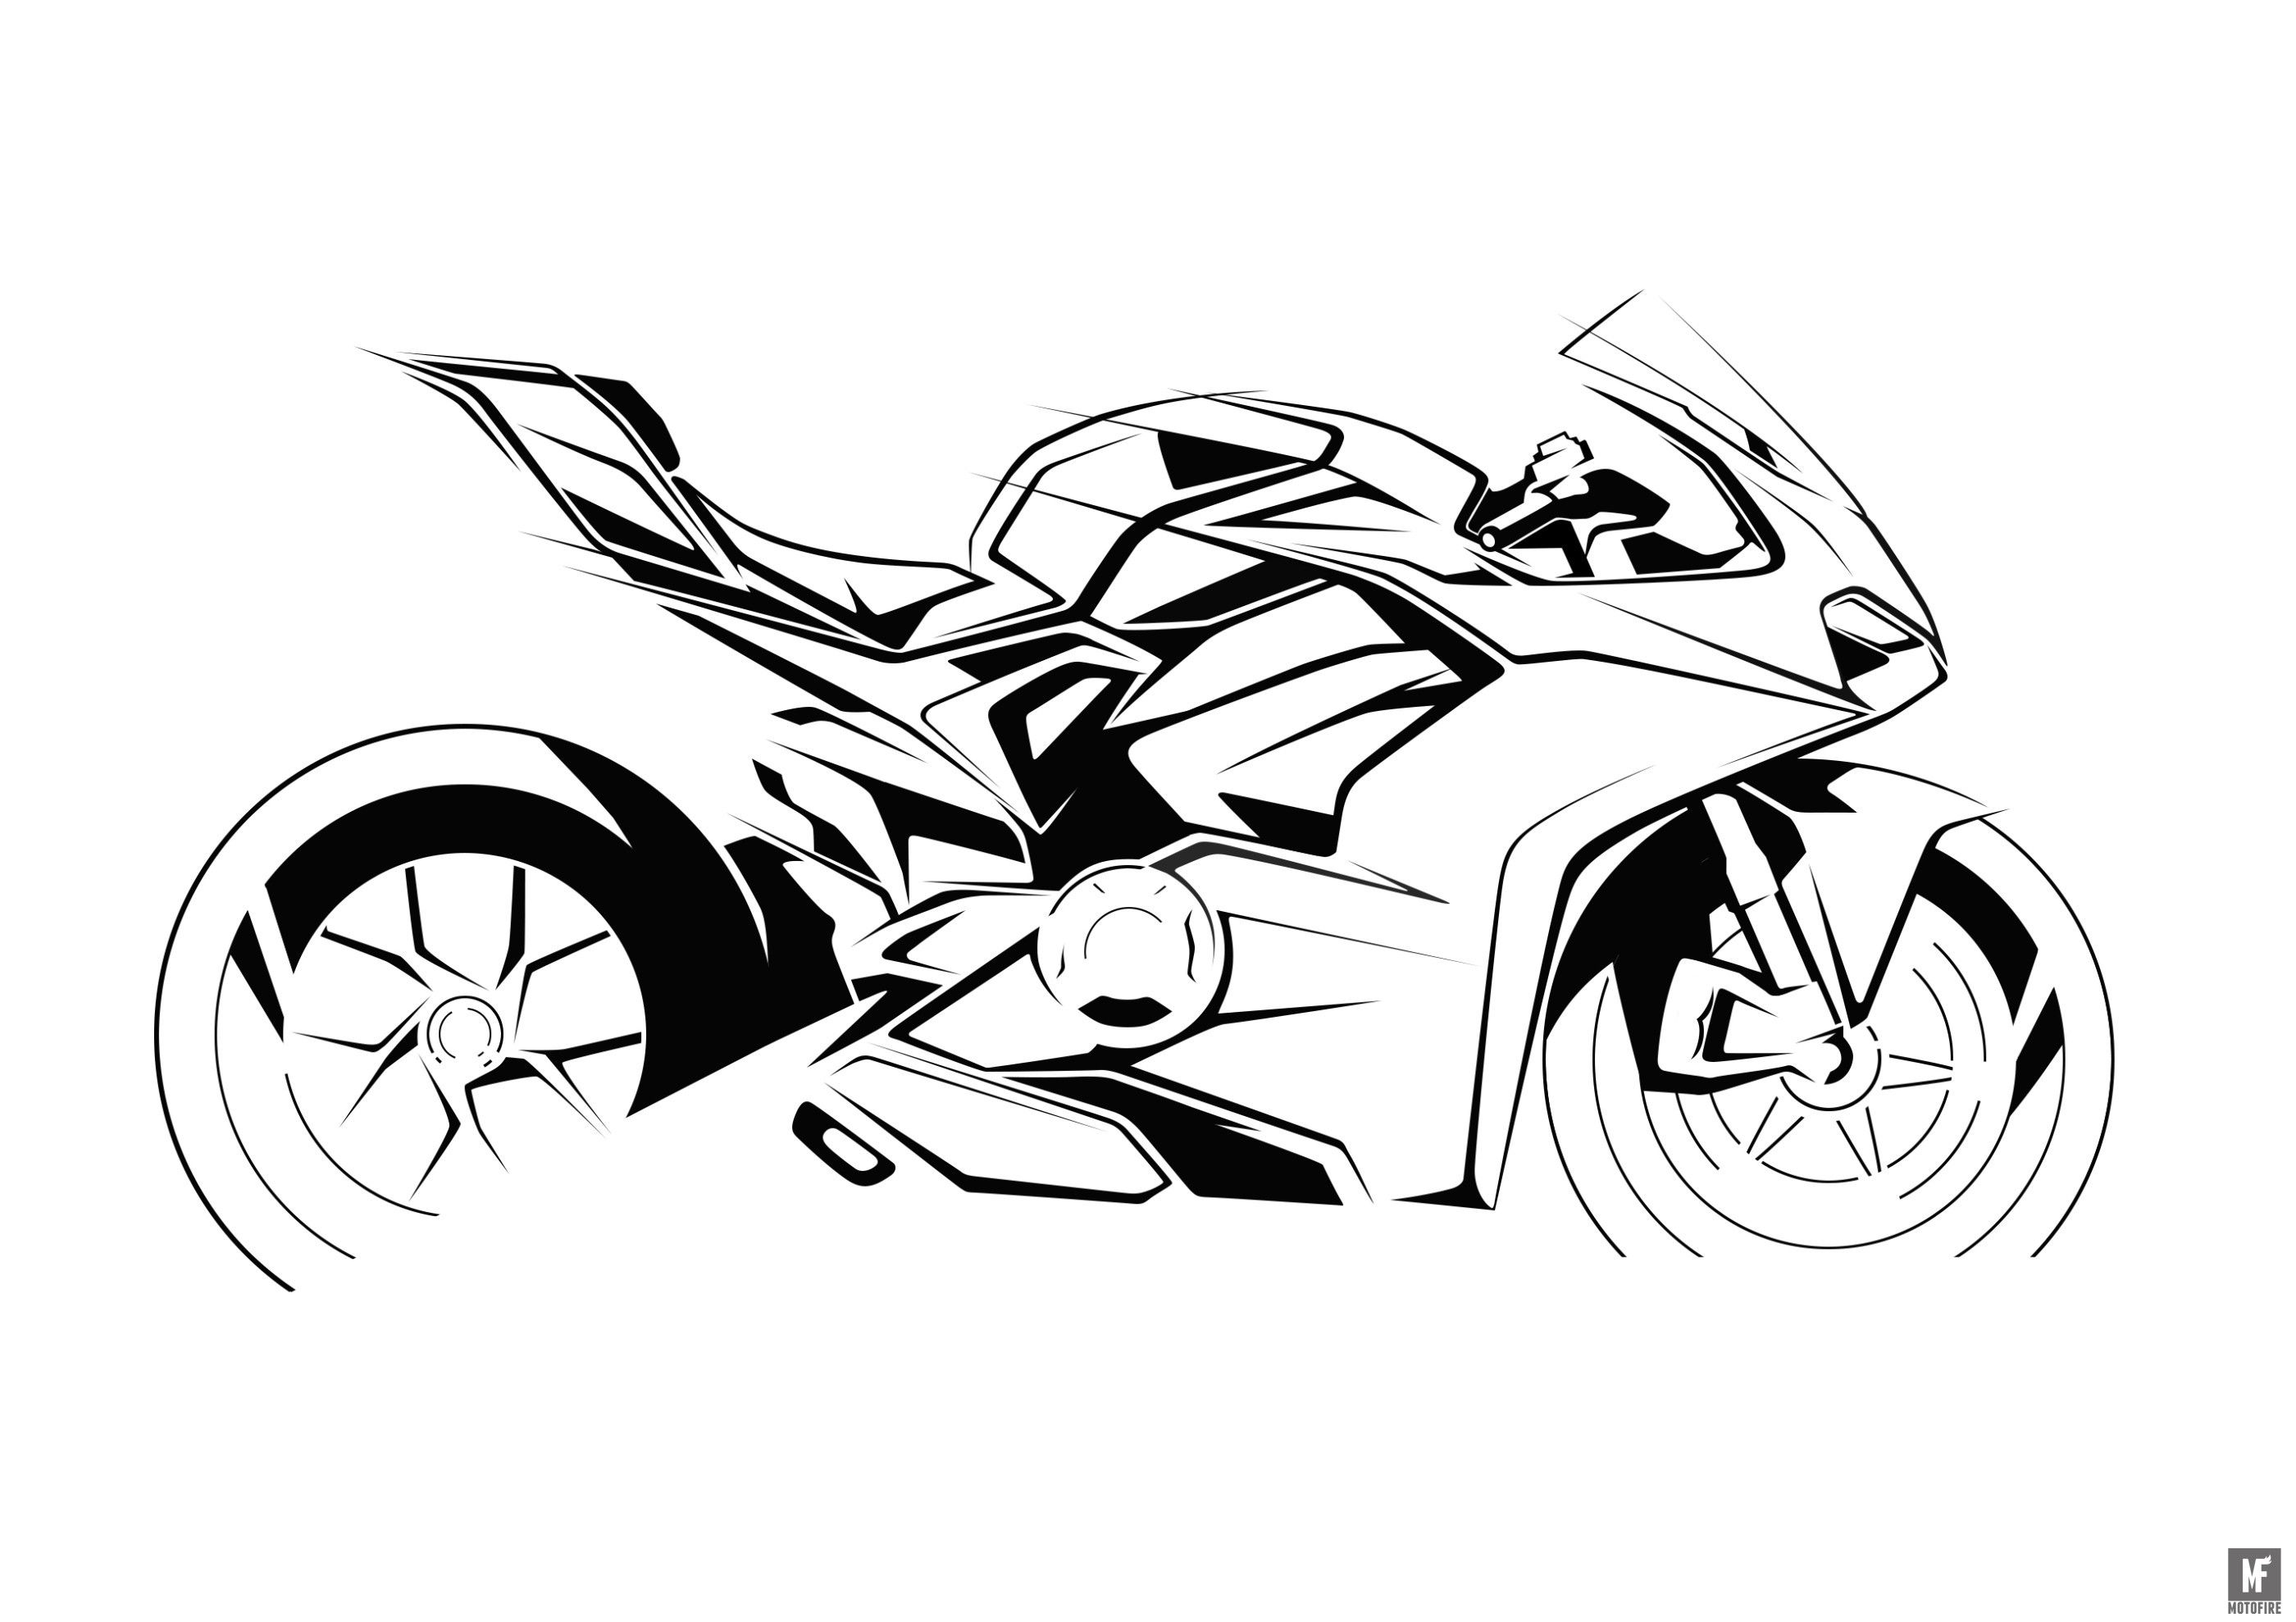 The design sketches for the Ducati Panigale V4 are stunning.